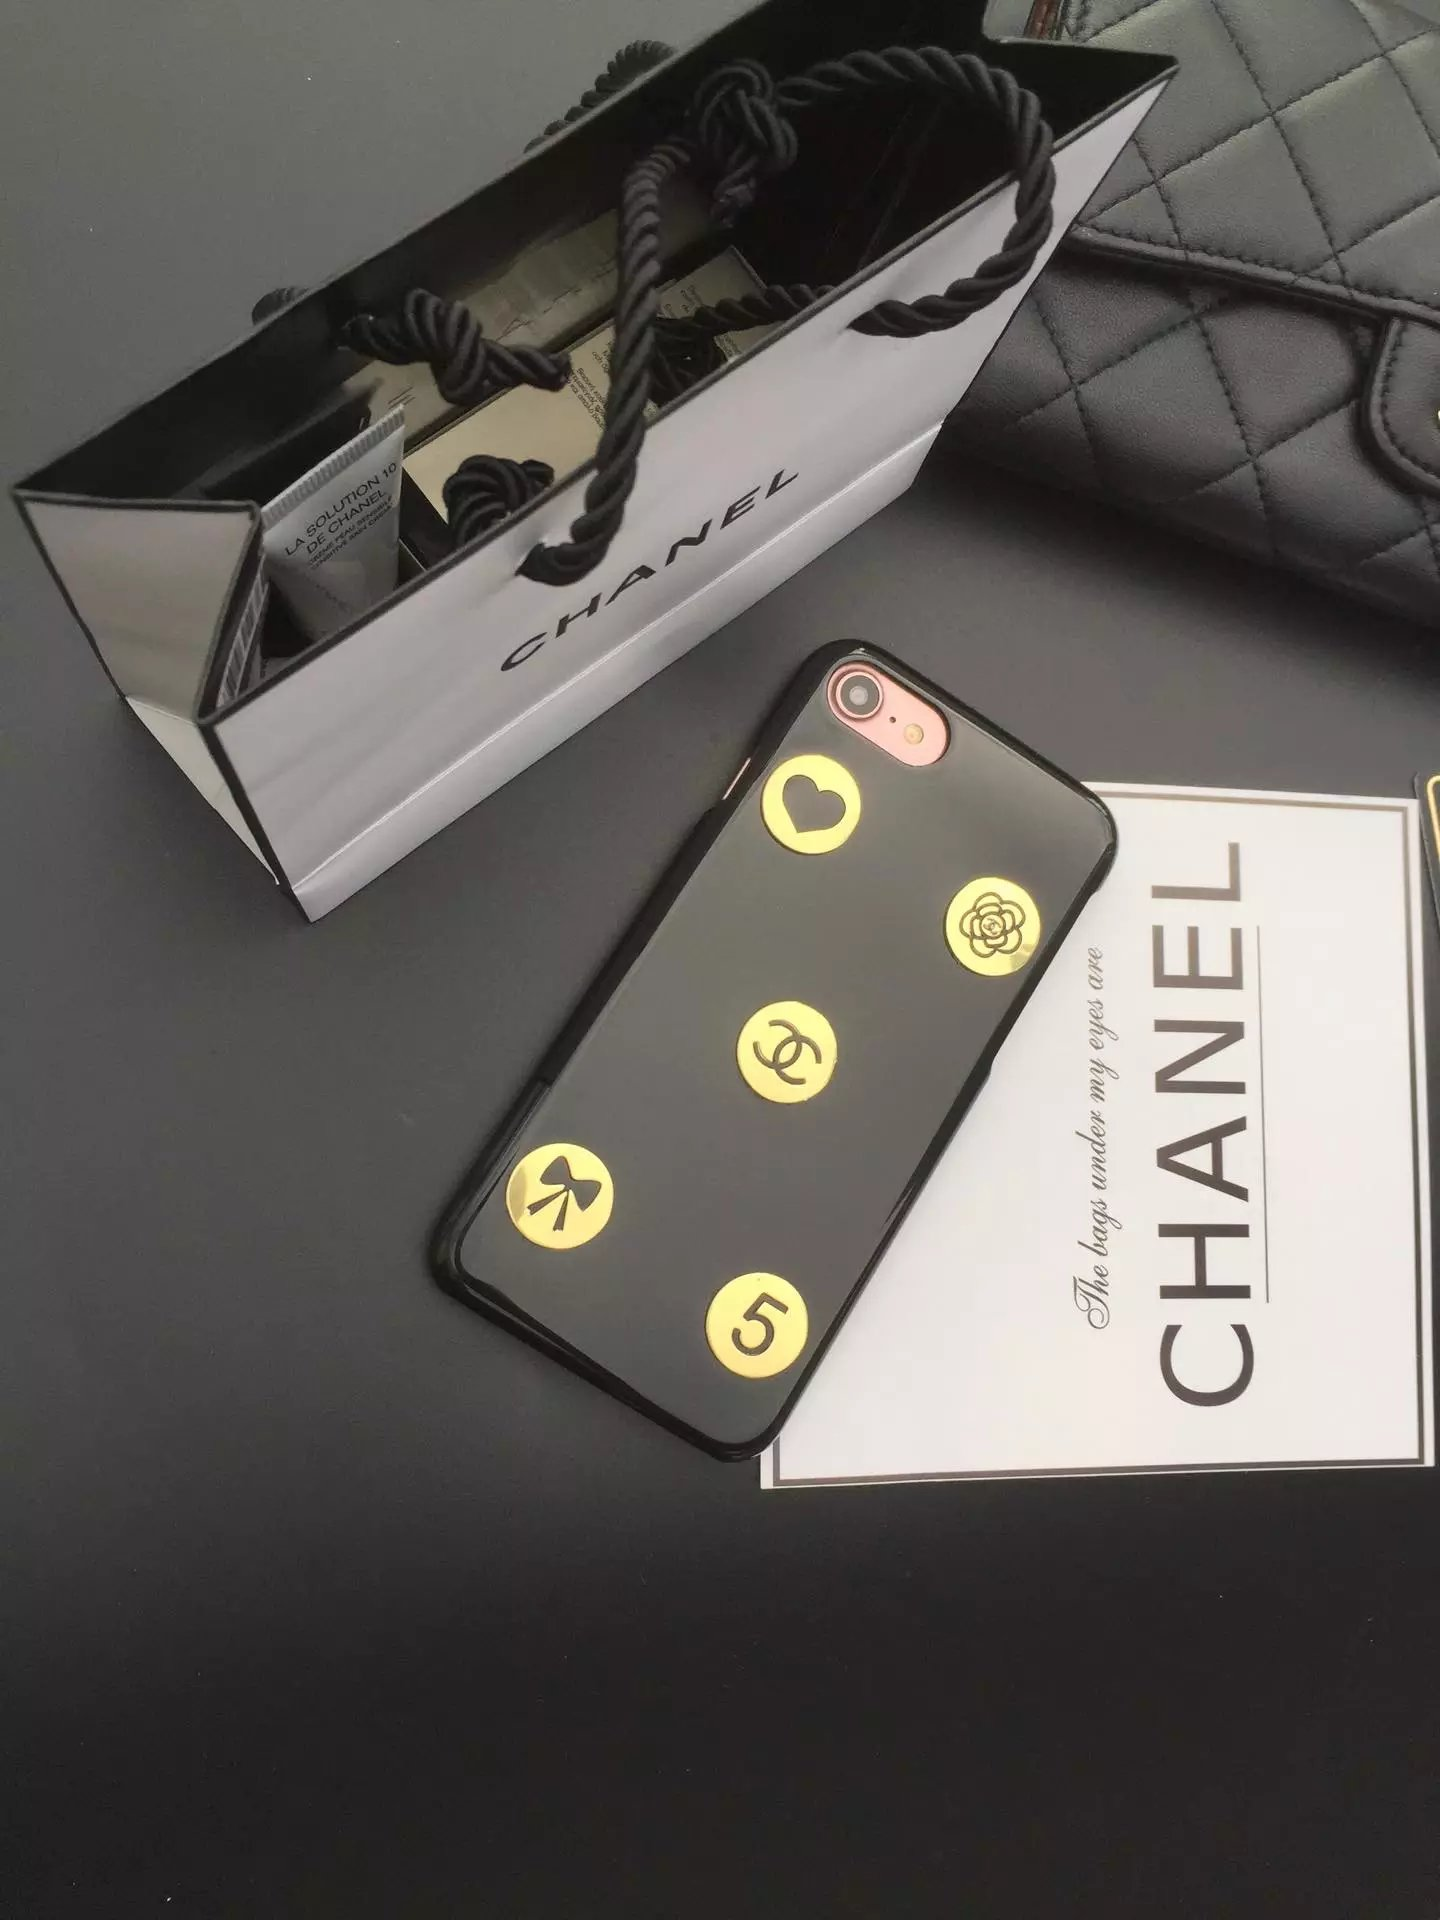 iphone 8 case cover nice iphone 8 cases Chanel iphone 8 case life cell phone case top phone cases iphone 8 case for 8 pretty phone cases for iphone 8 designer iphone 8 cases sale where to buy mophie cases